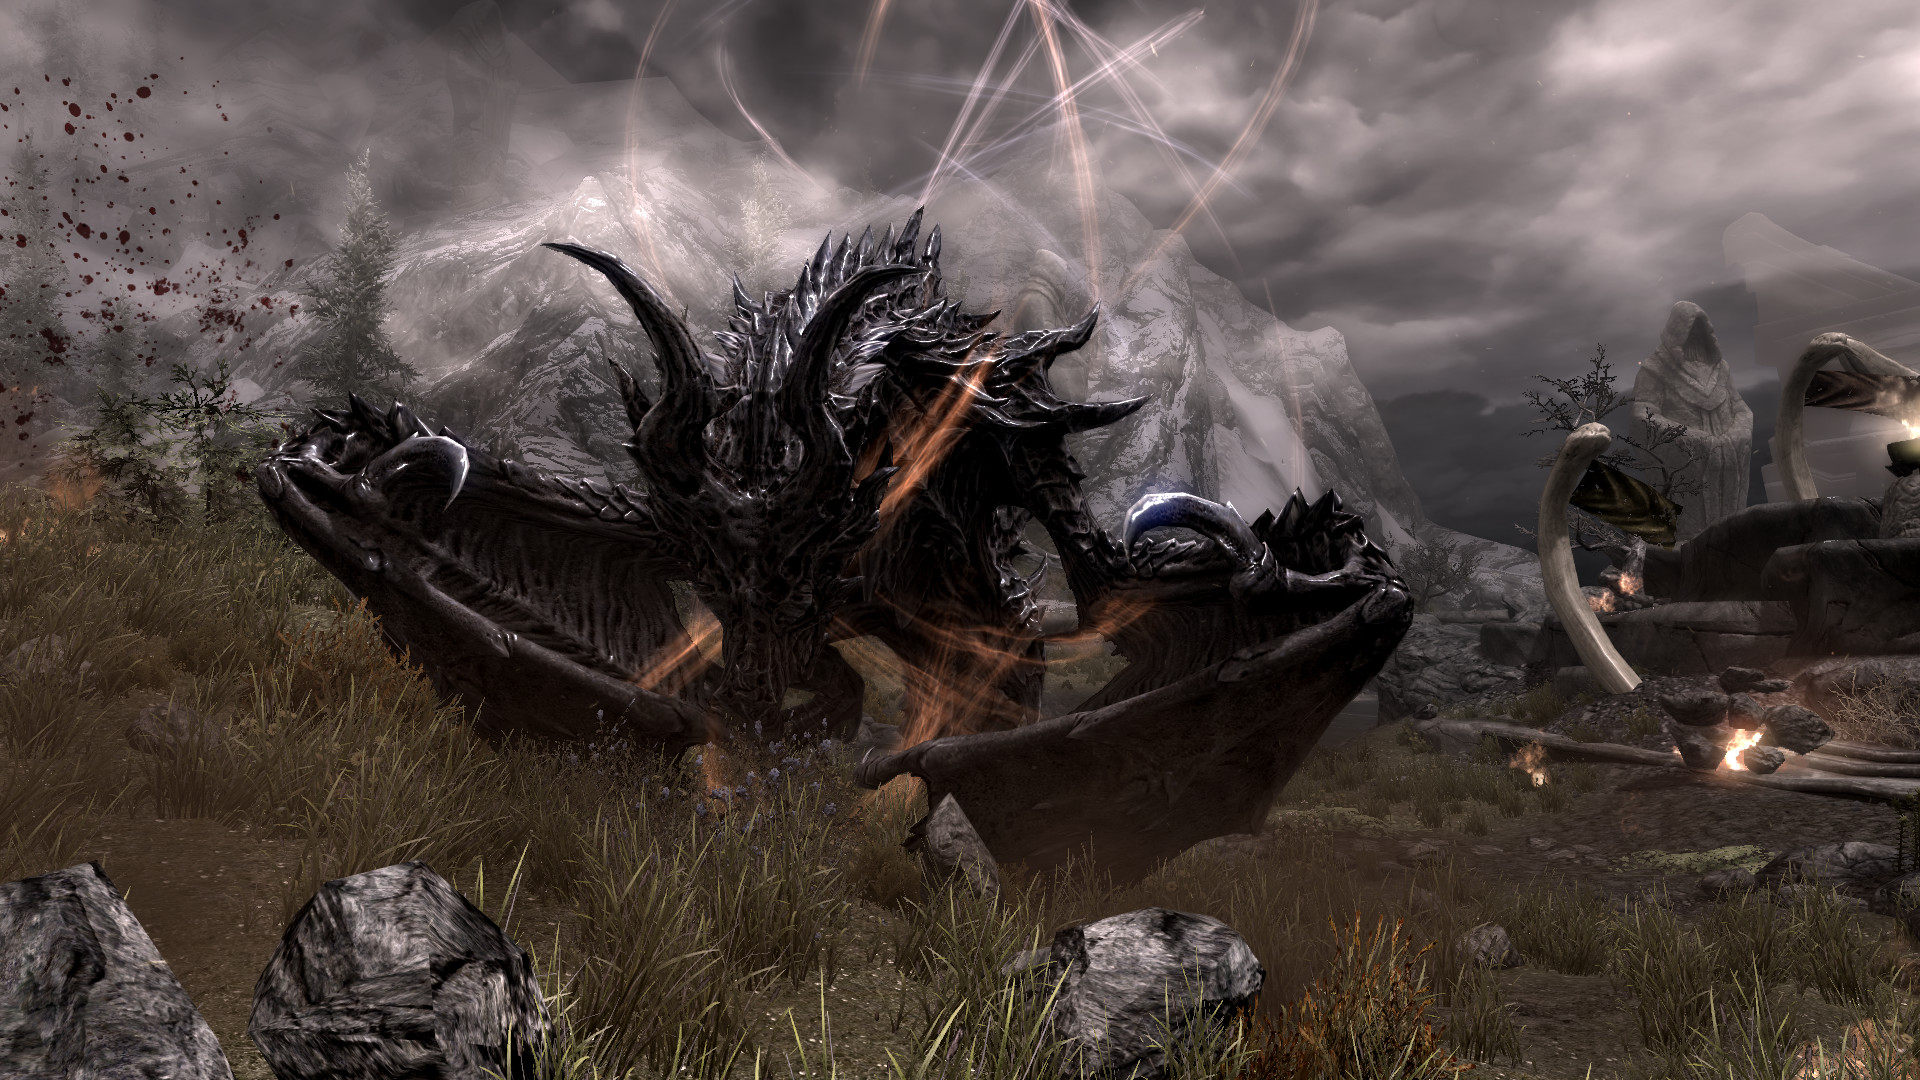 Skyrim Dragon Wallpaper Hd Images & Pictures – Becuo HTML .